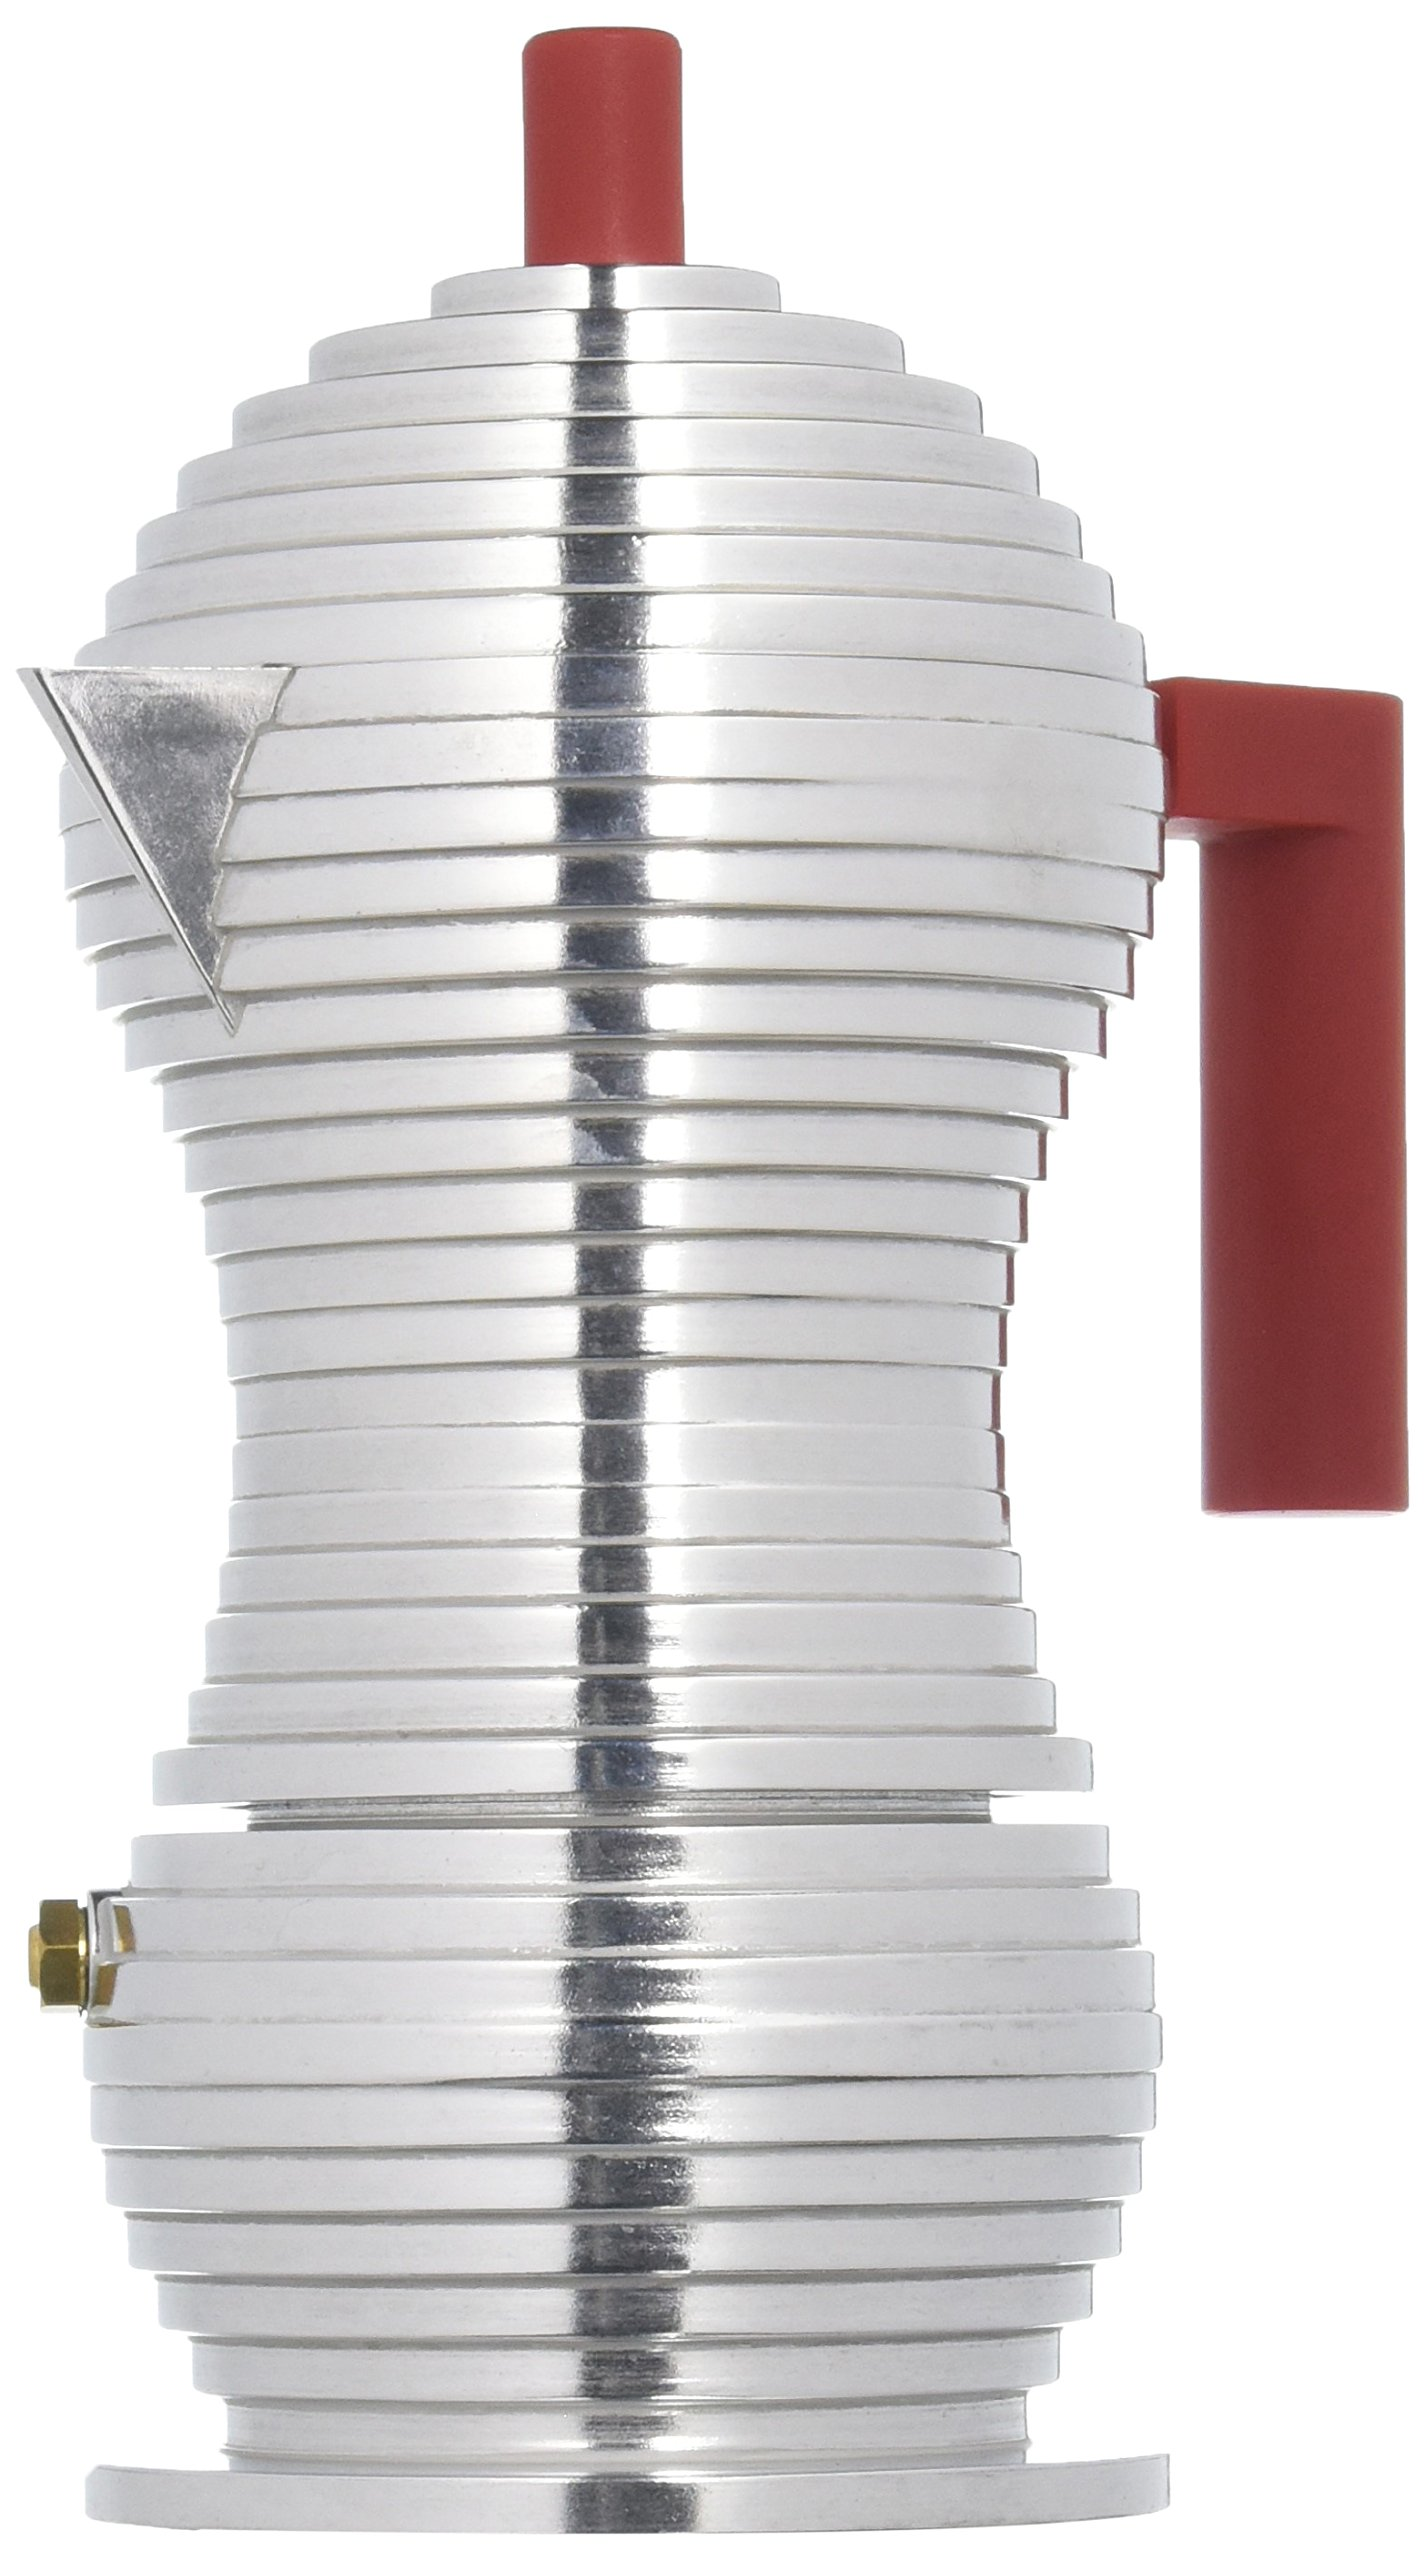 Alessi MDL02/3 R''Pulcina'' Stove Top Espresso 3 Cup Coffee Maker in Aluminum Casting Handle And Knob in Pa, Red